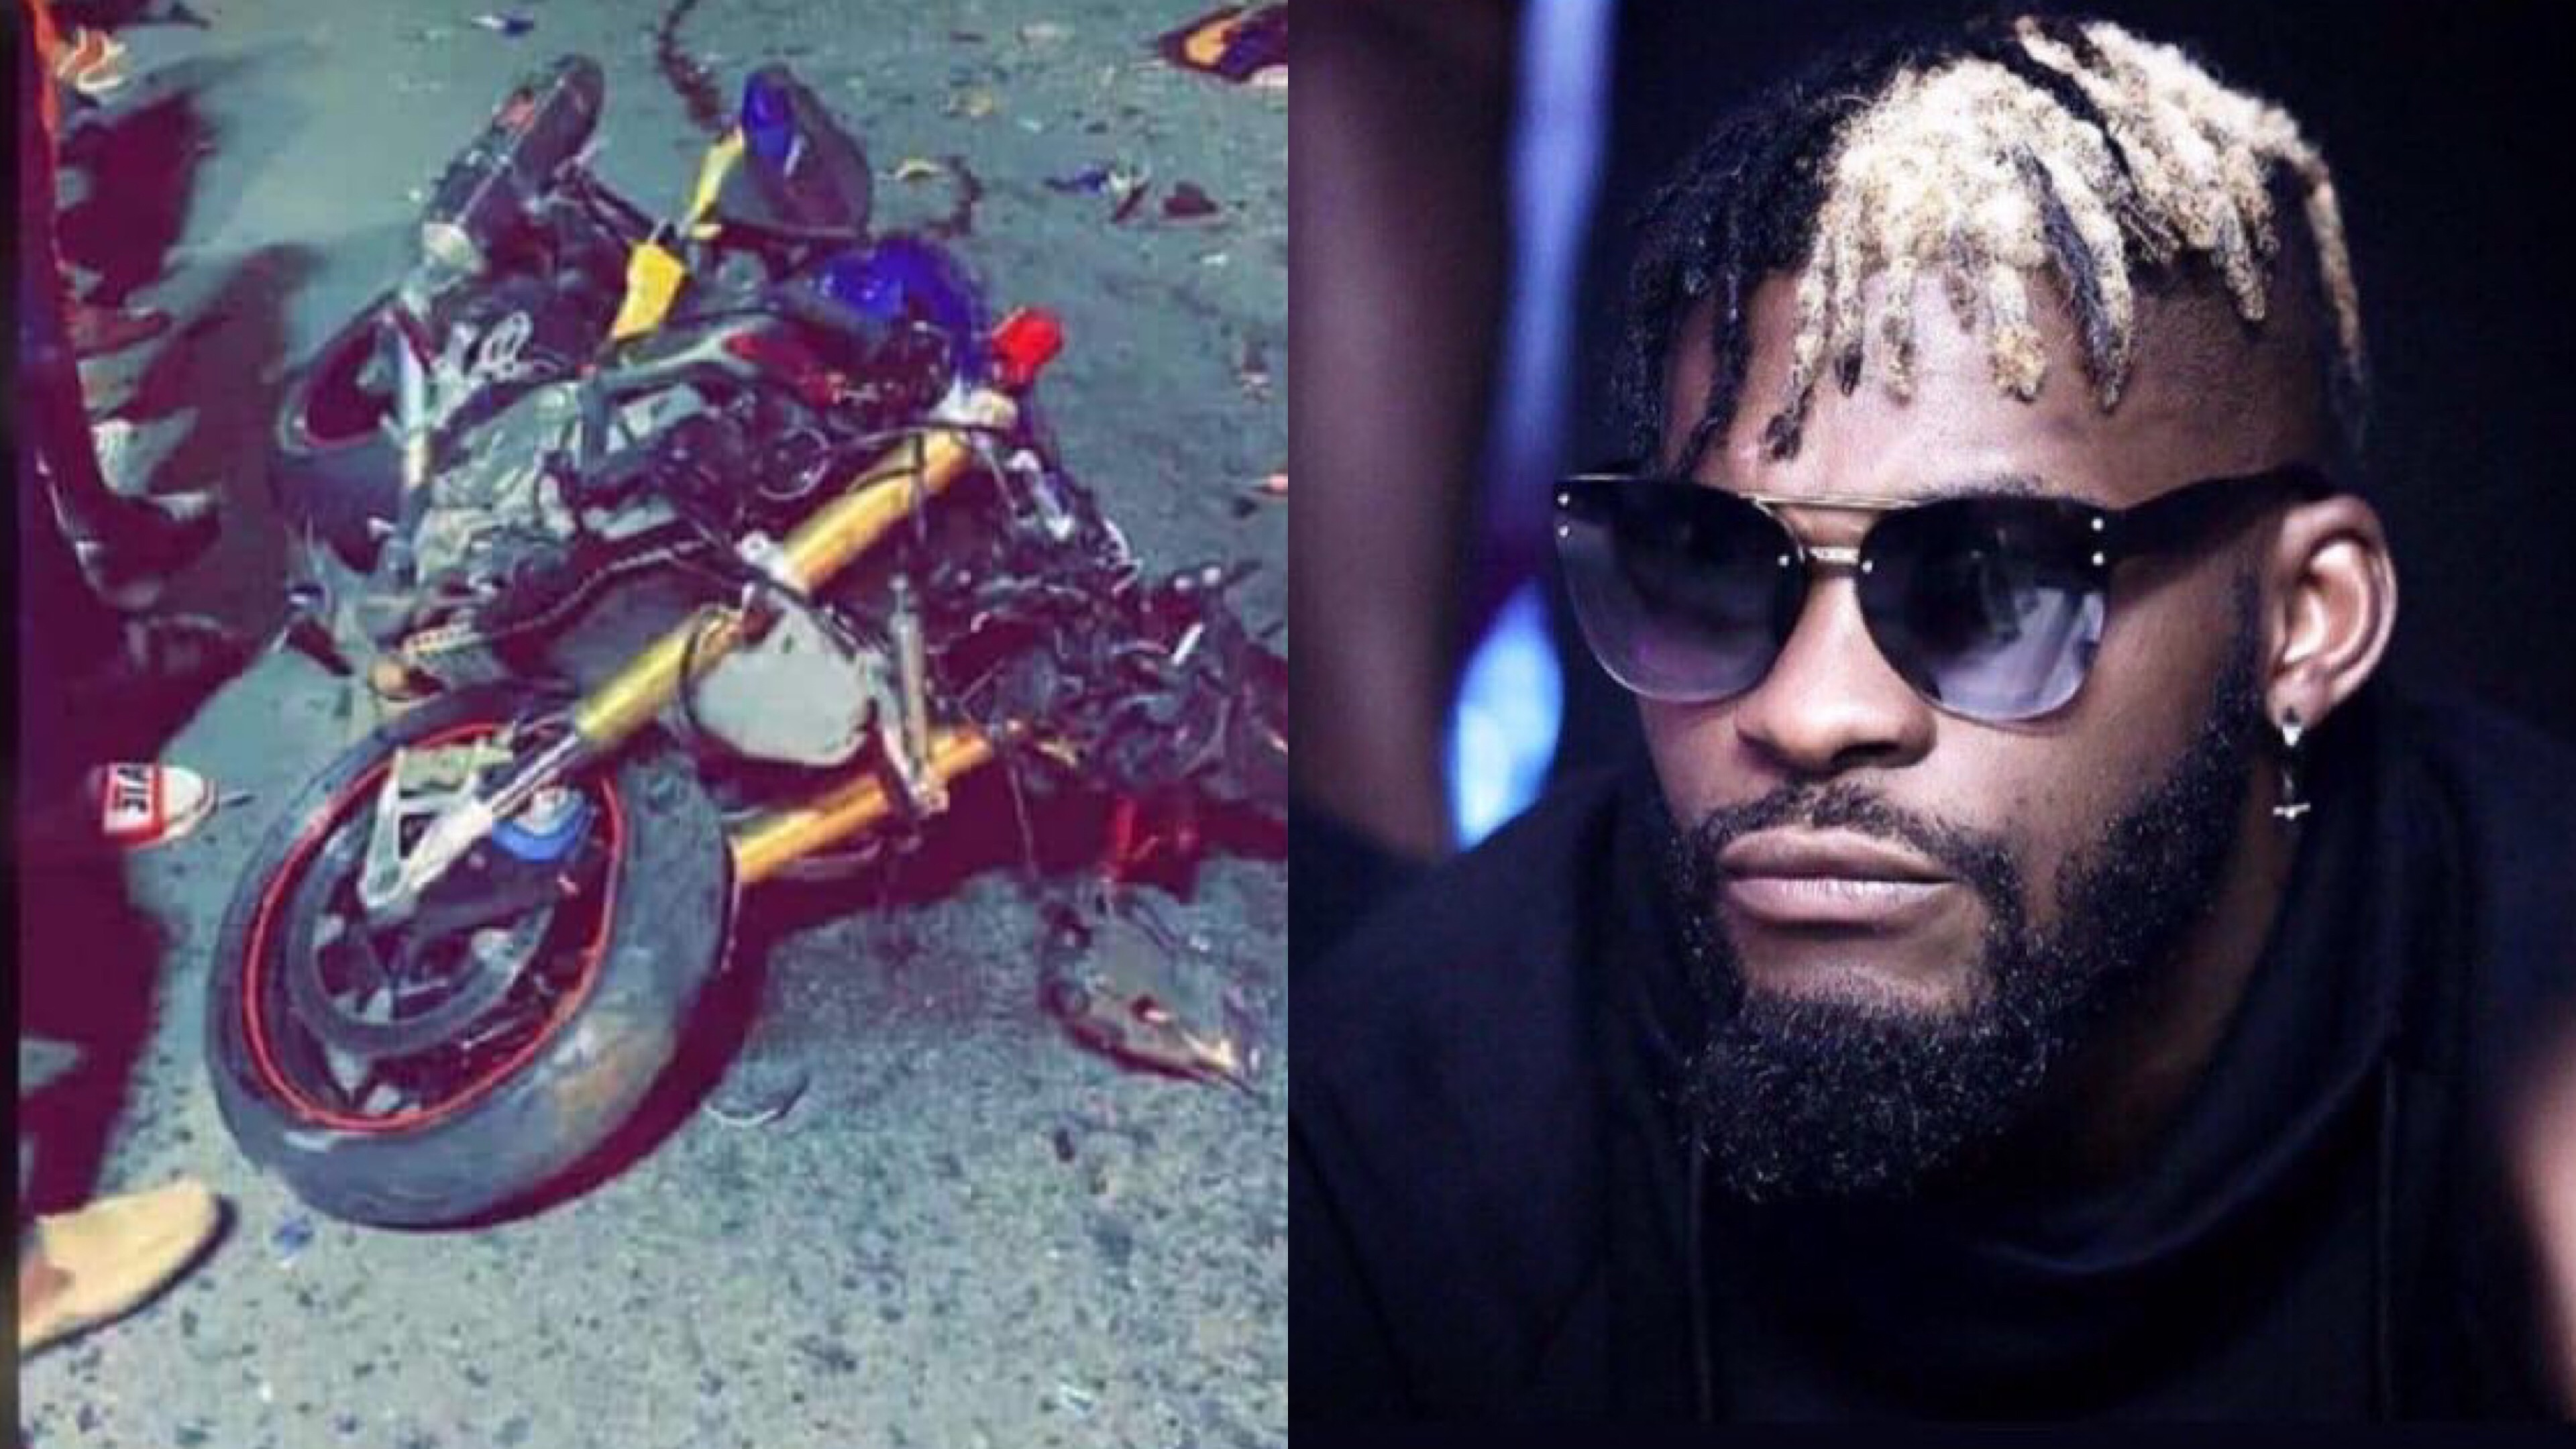 Watch video of DJ Arafat's bike accident that led to death